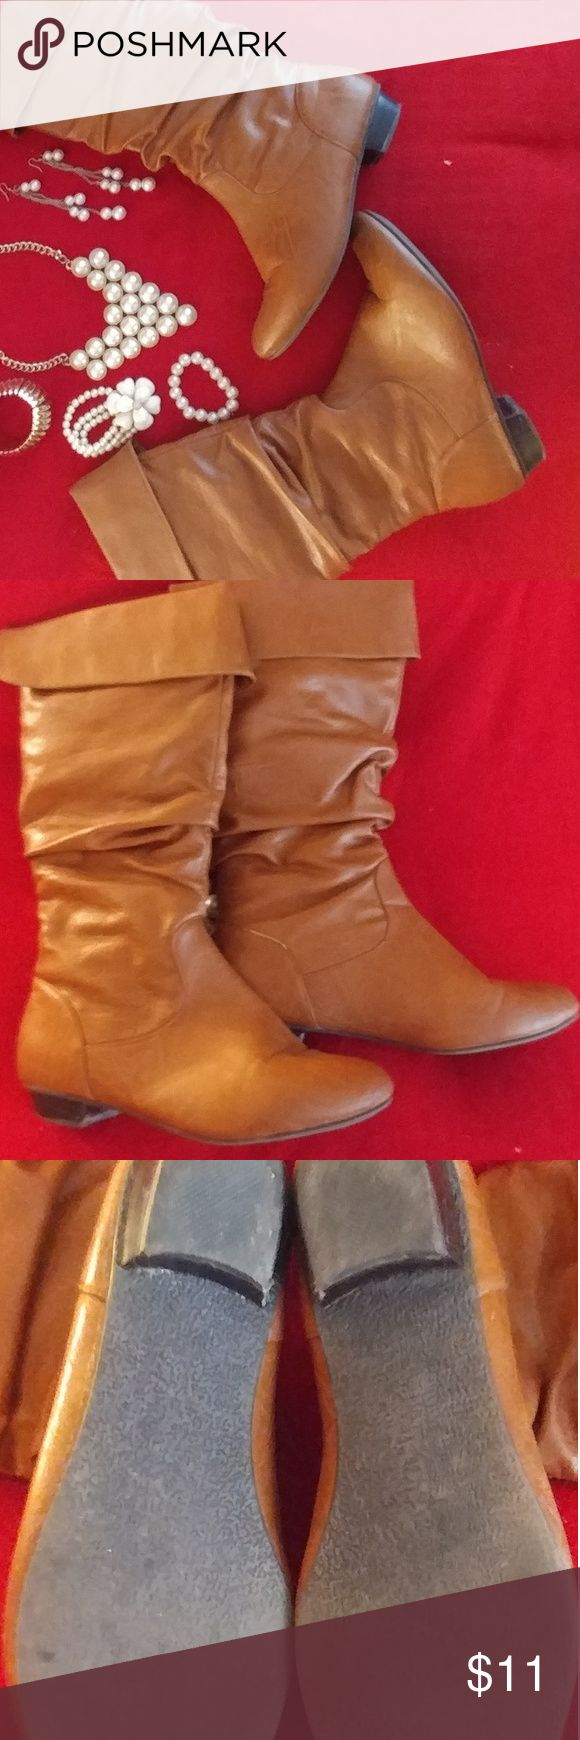 Tan Faux Leather Boots Sleek neutral boot for any occasion. ?Goes great with a dress or over jeans.  Gently used with minor blemishes.  Only worn a few times and kept in good condition. Shoes